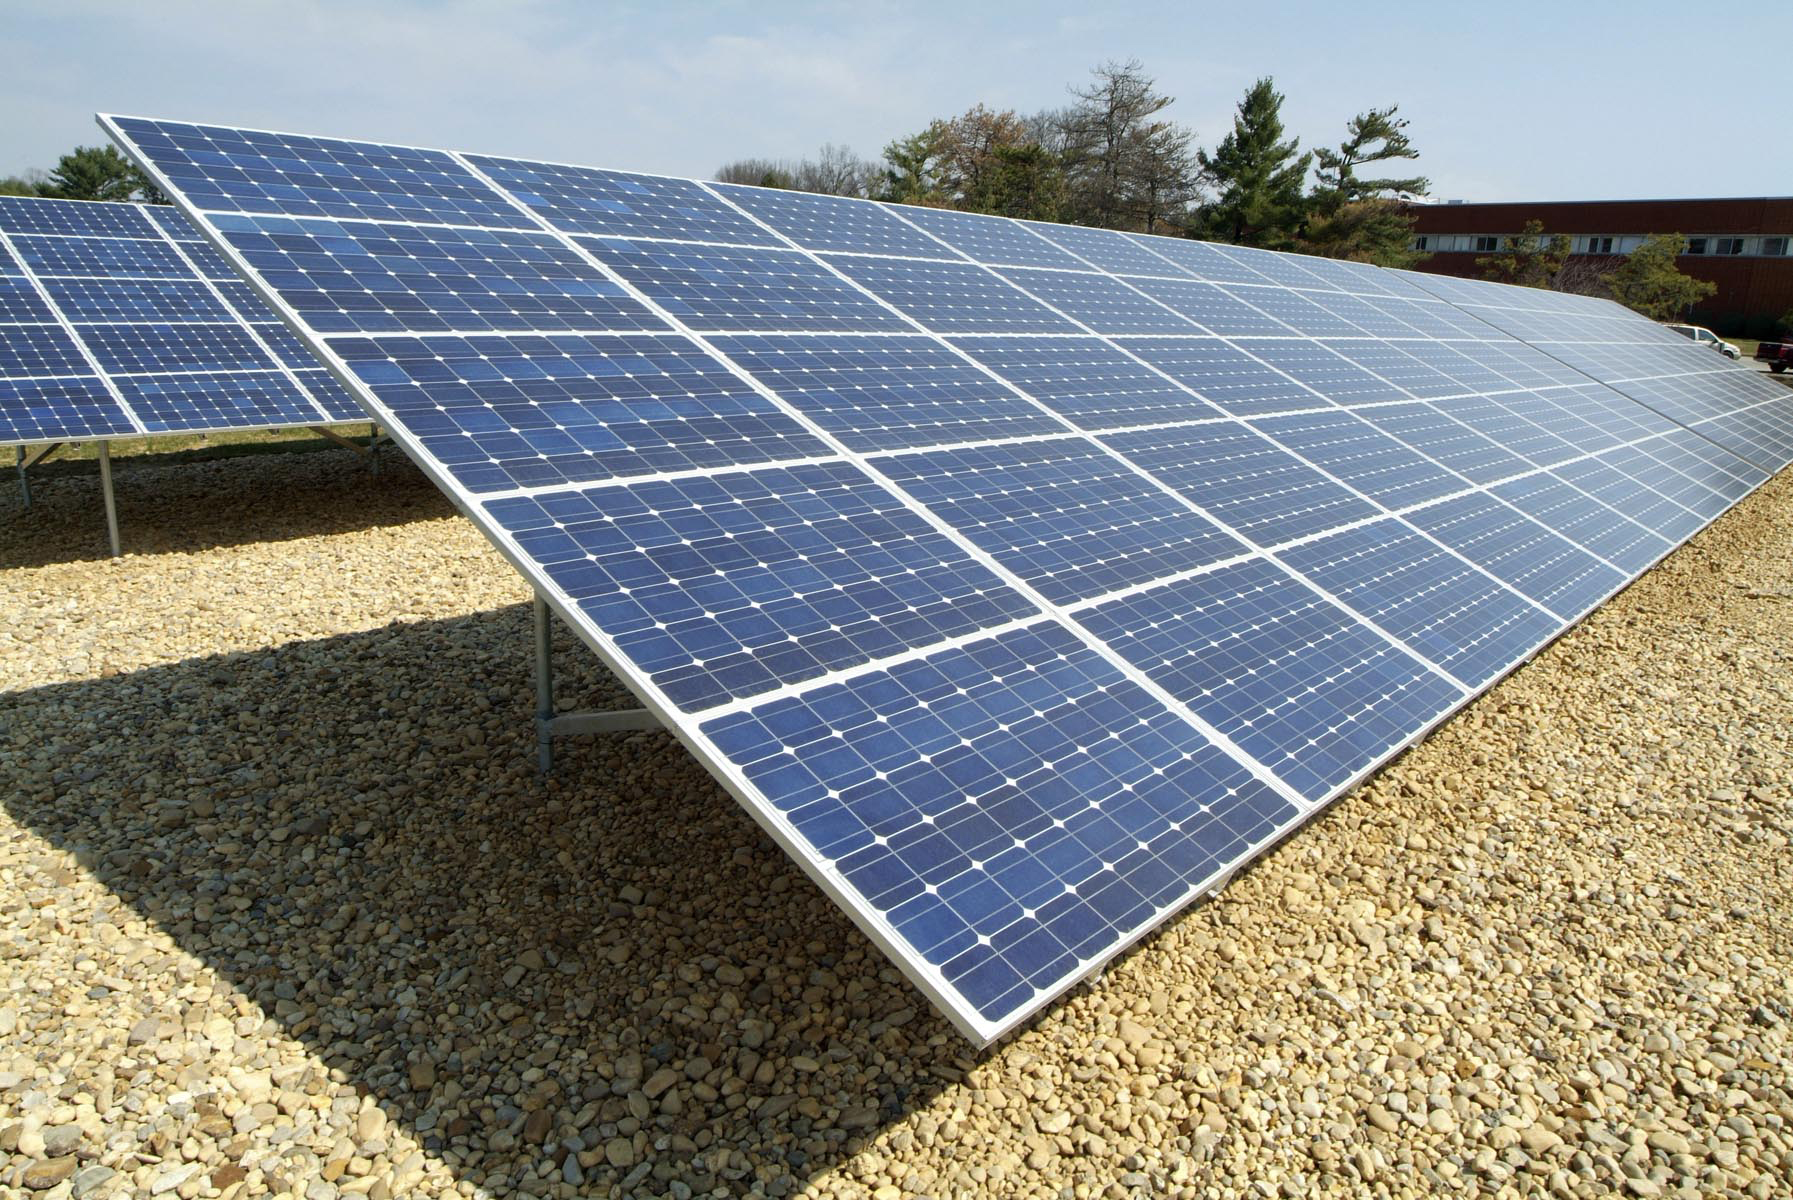 Subsidies for photovoltaic